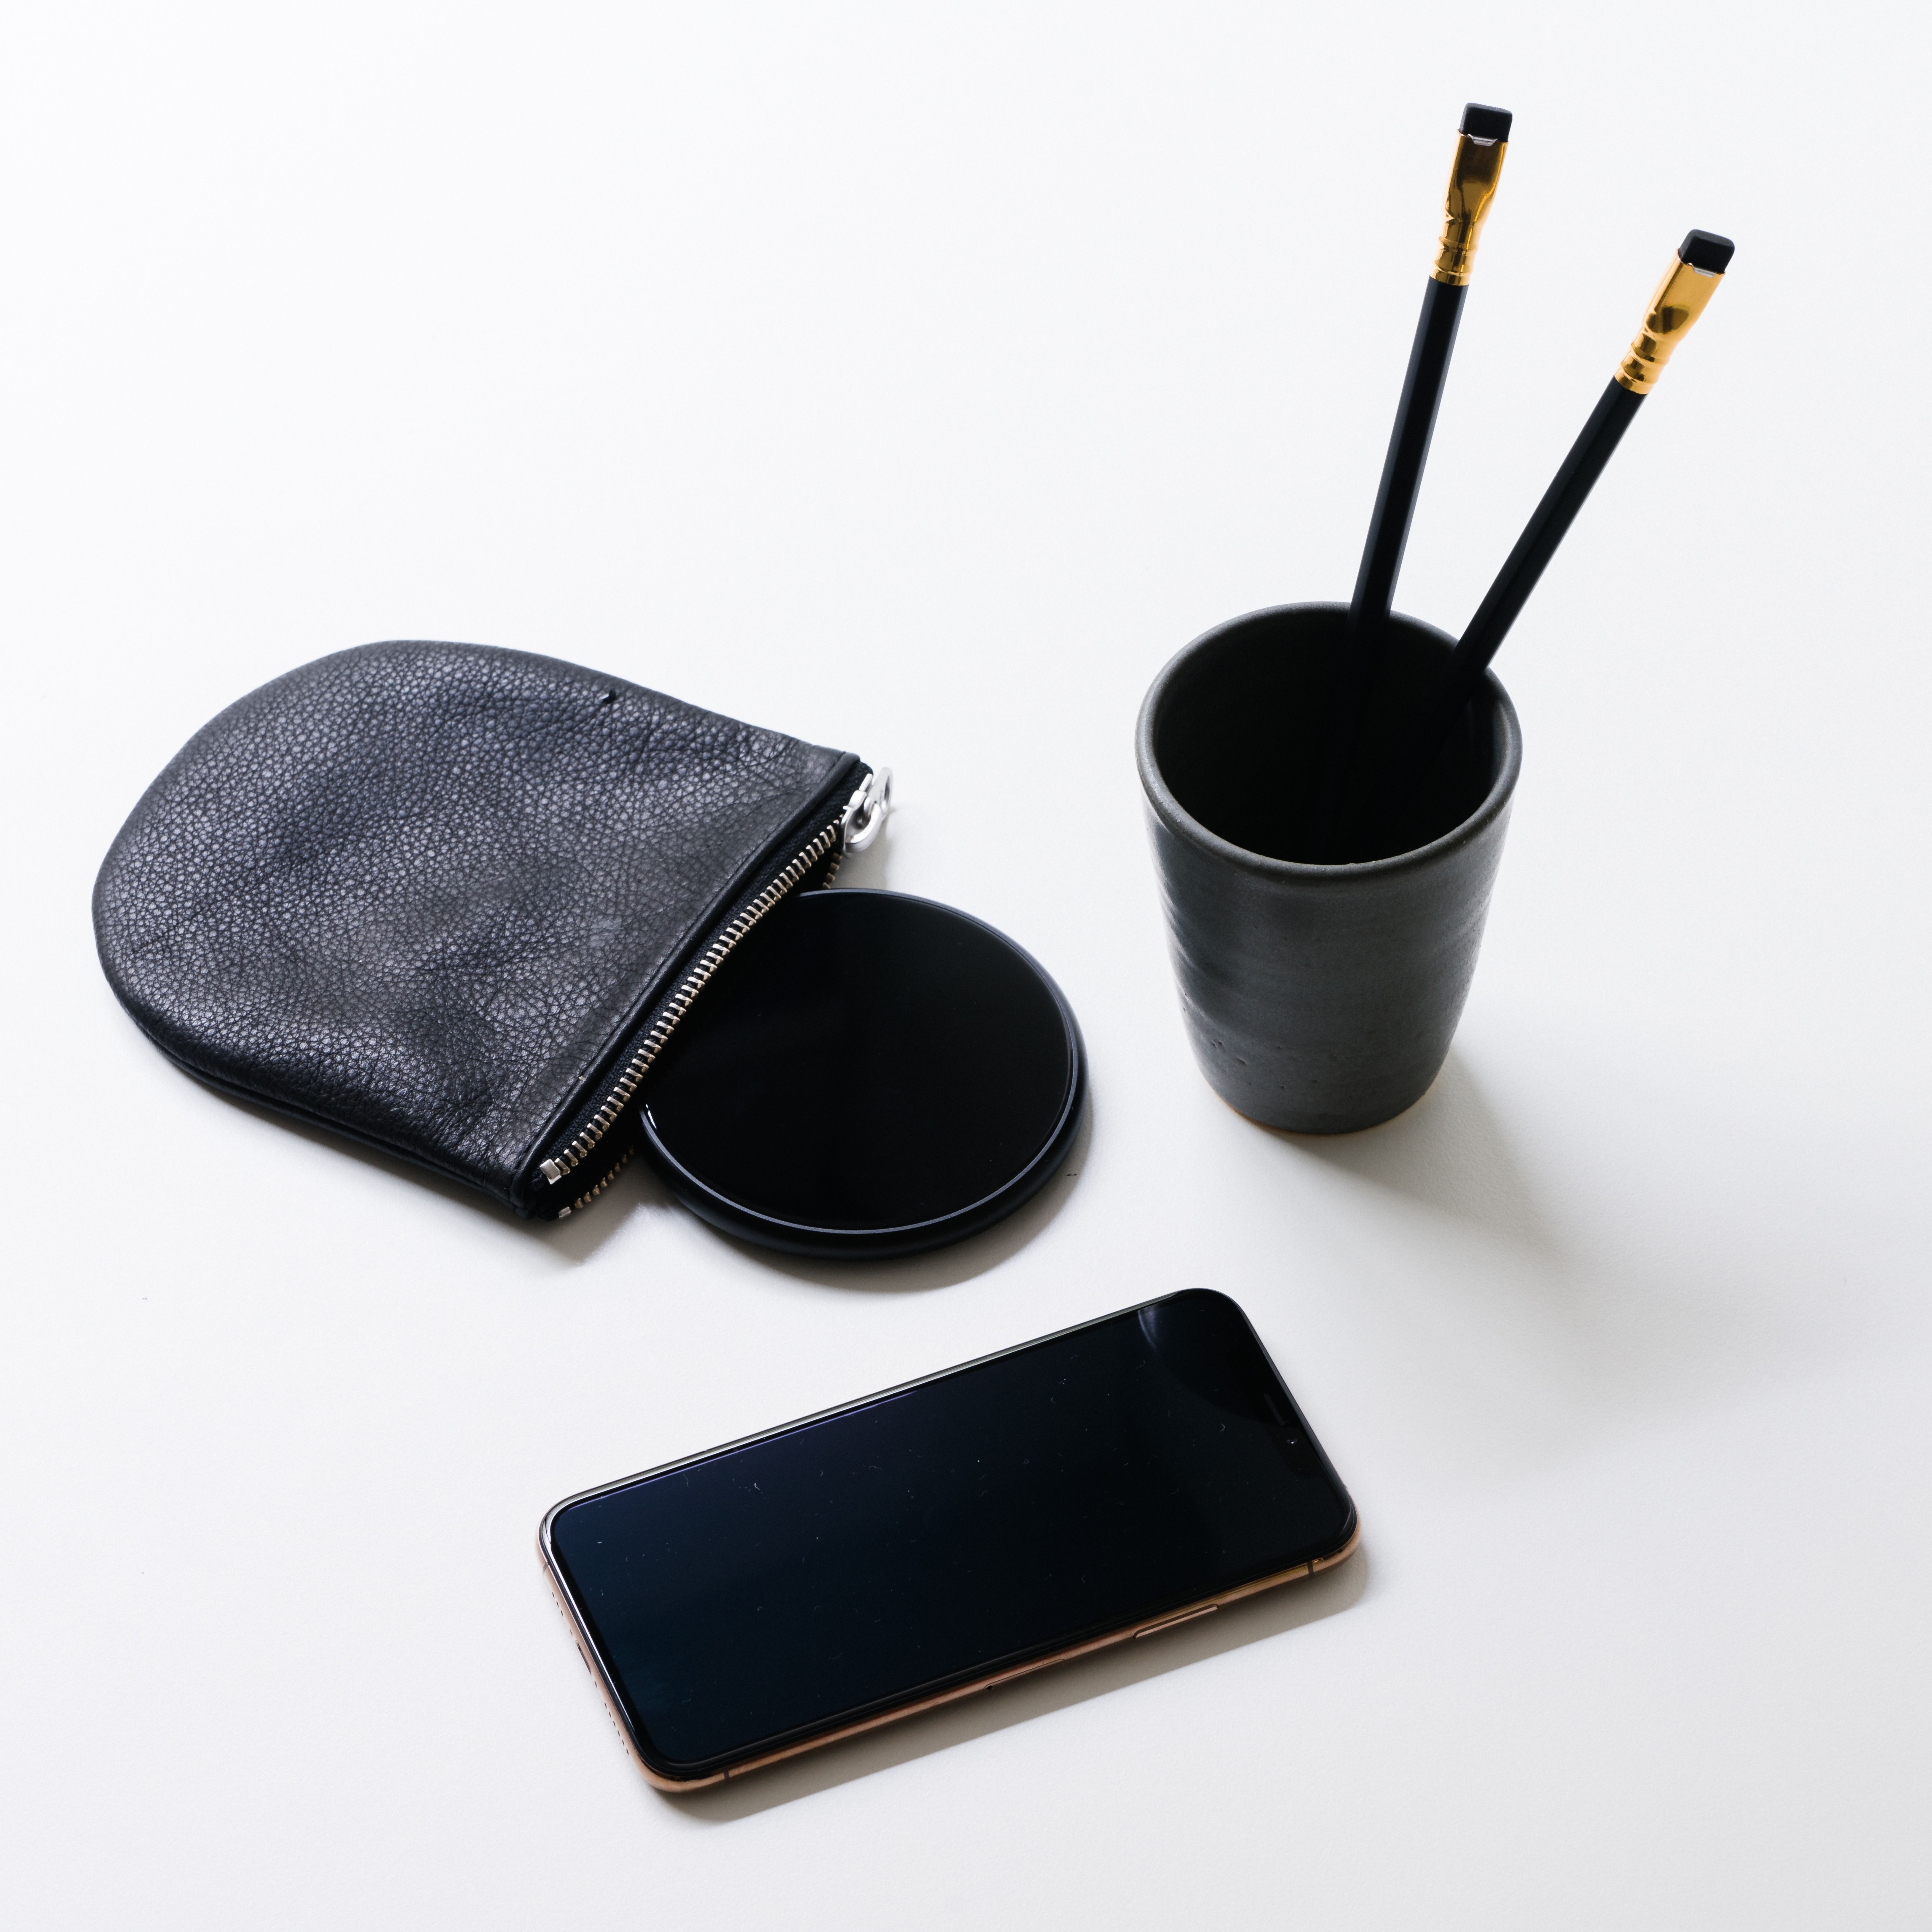 DISC premium wireless charger Wireless charger